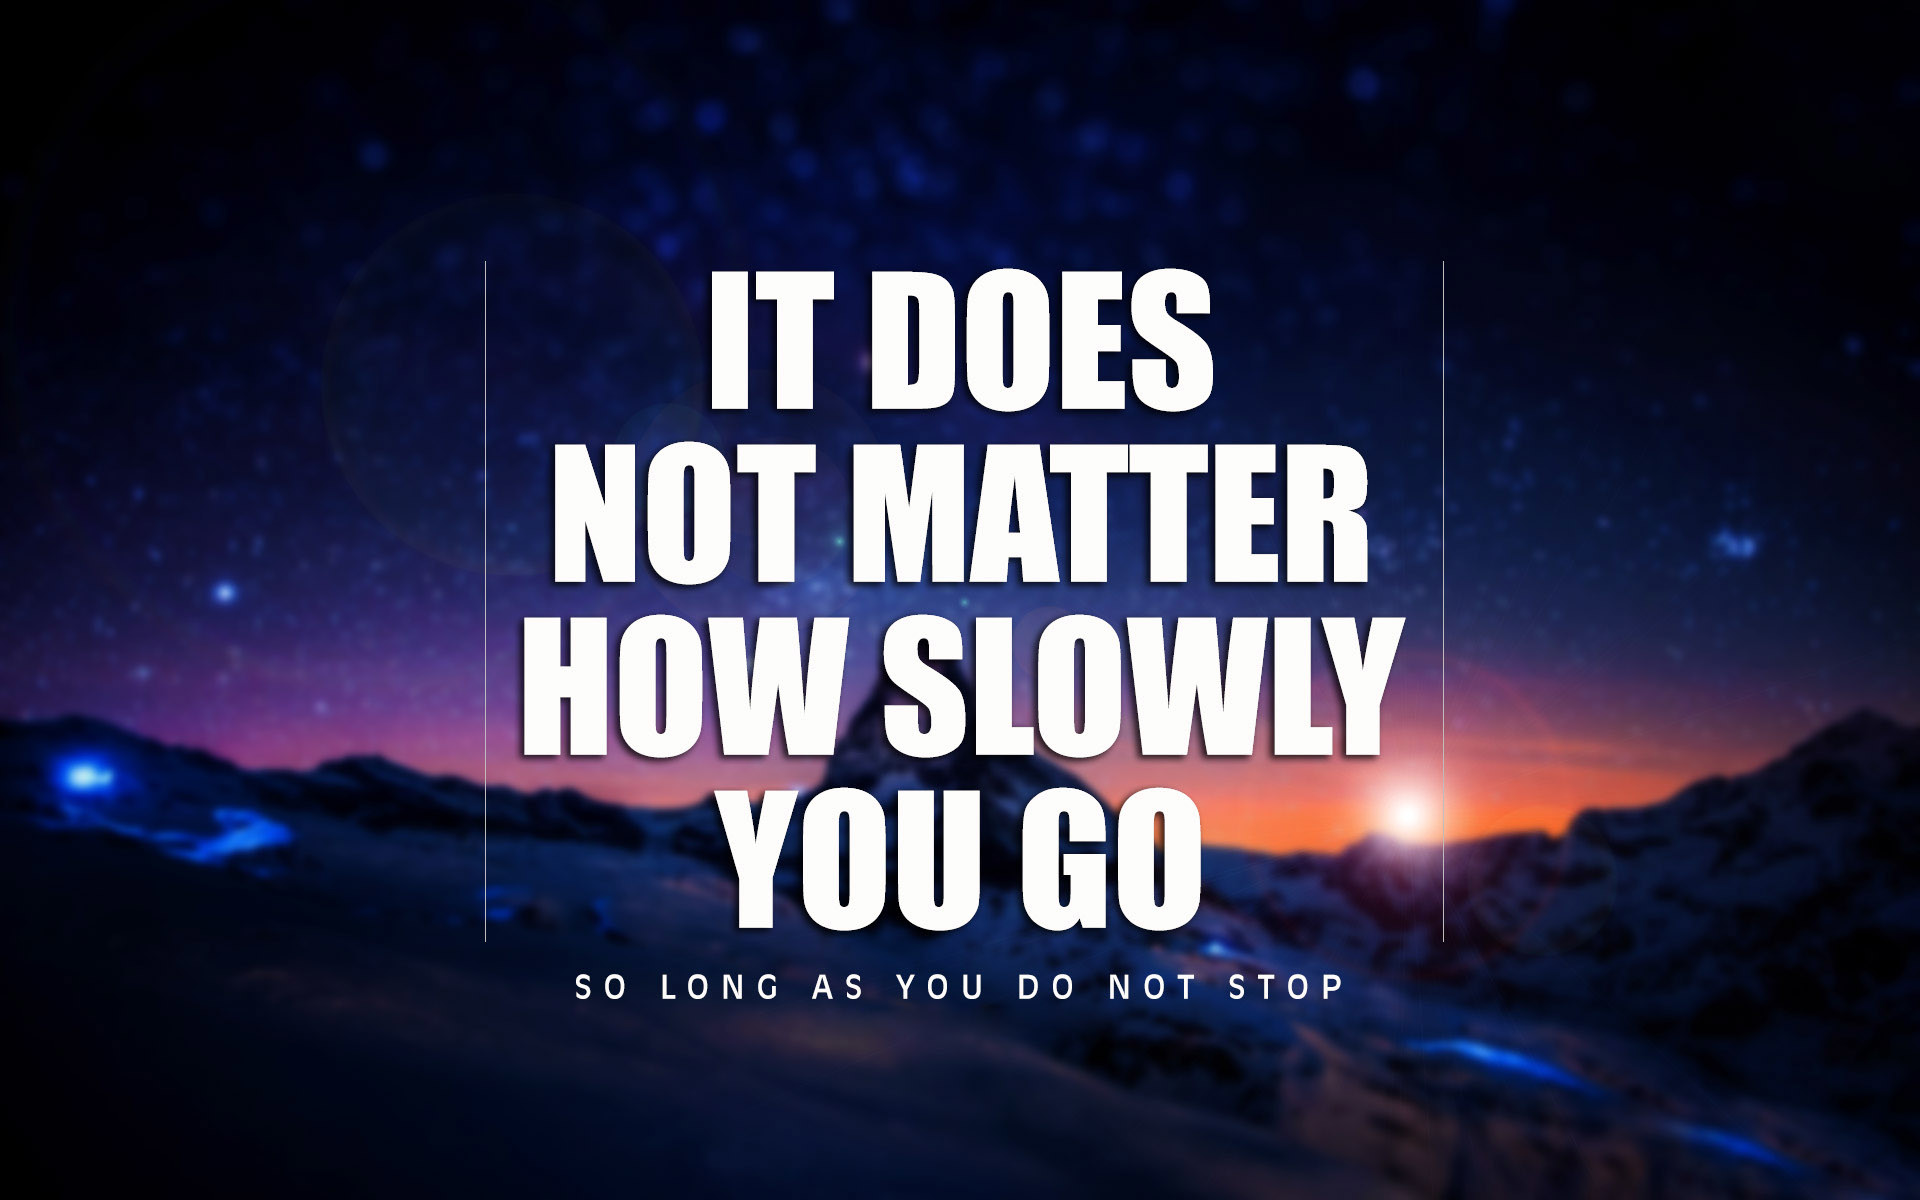 … Quote Backgrounds free download Pixels Talk